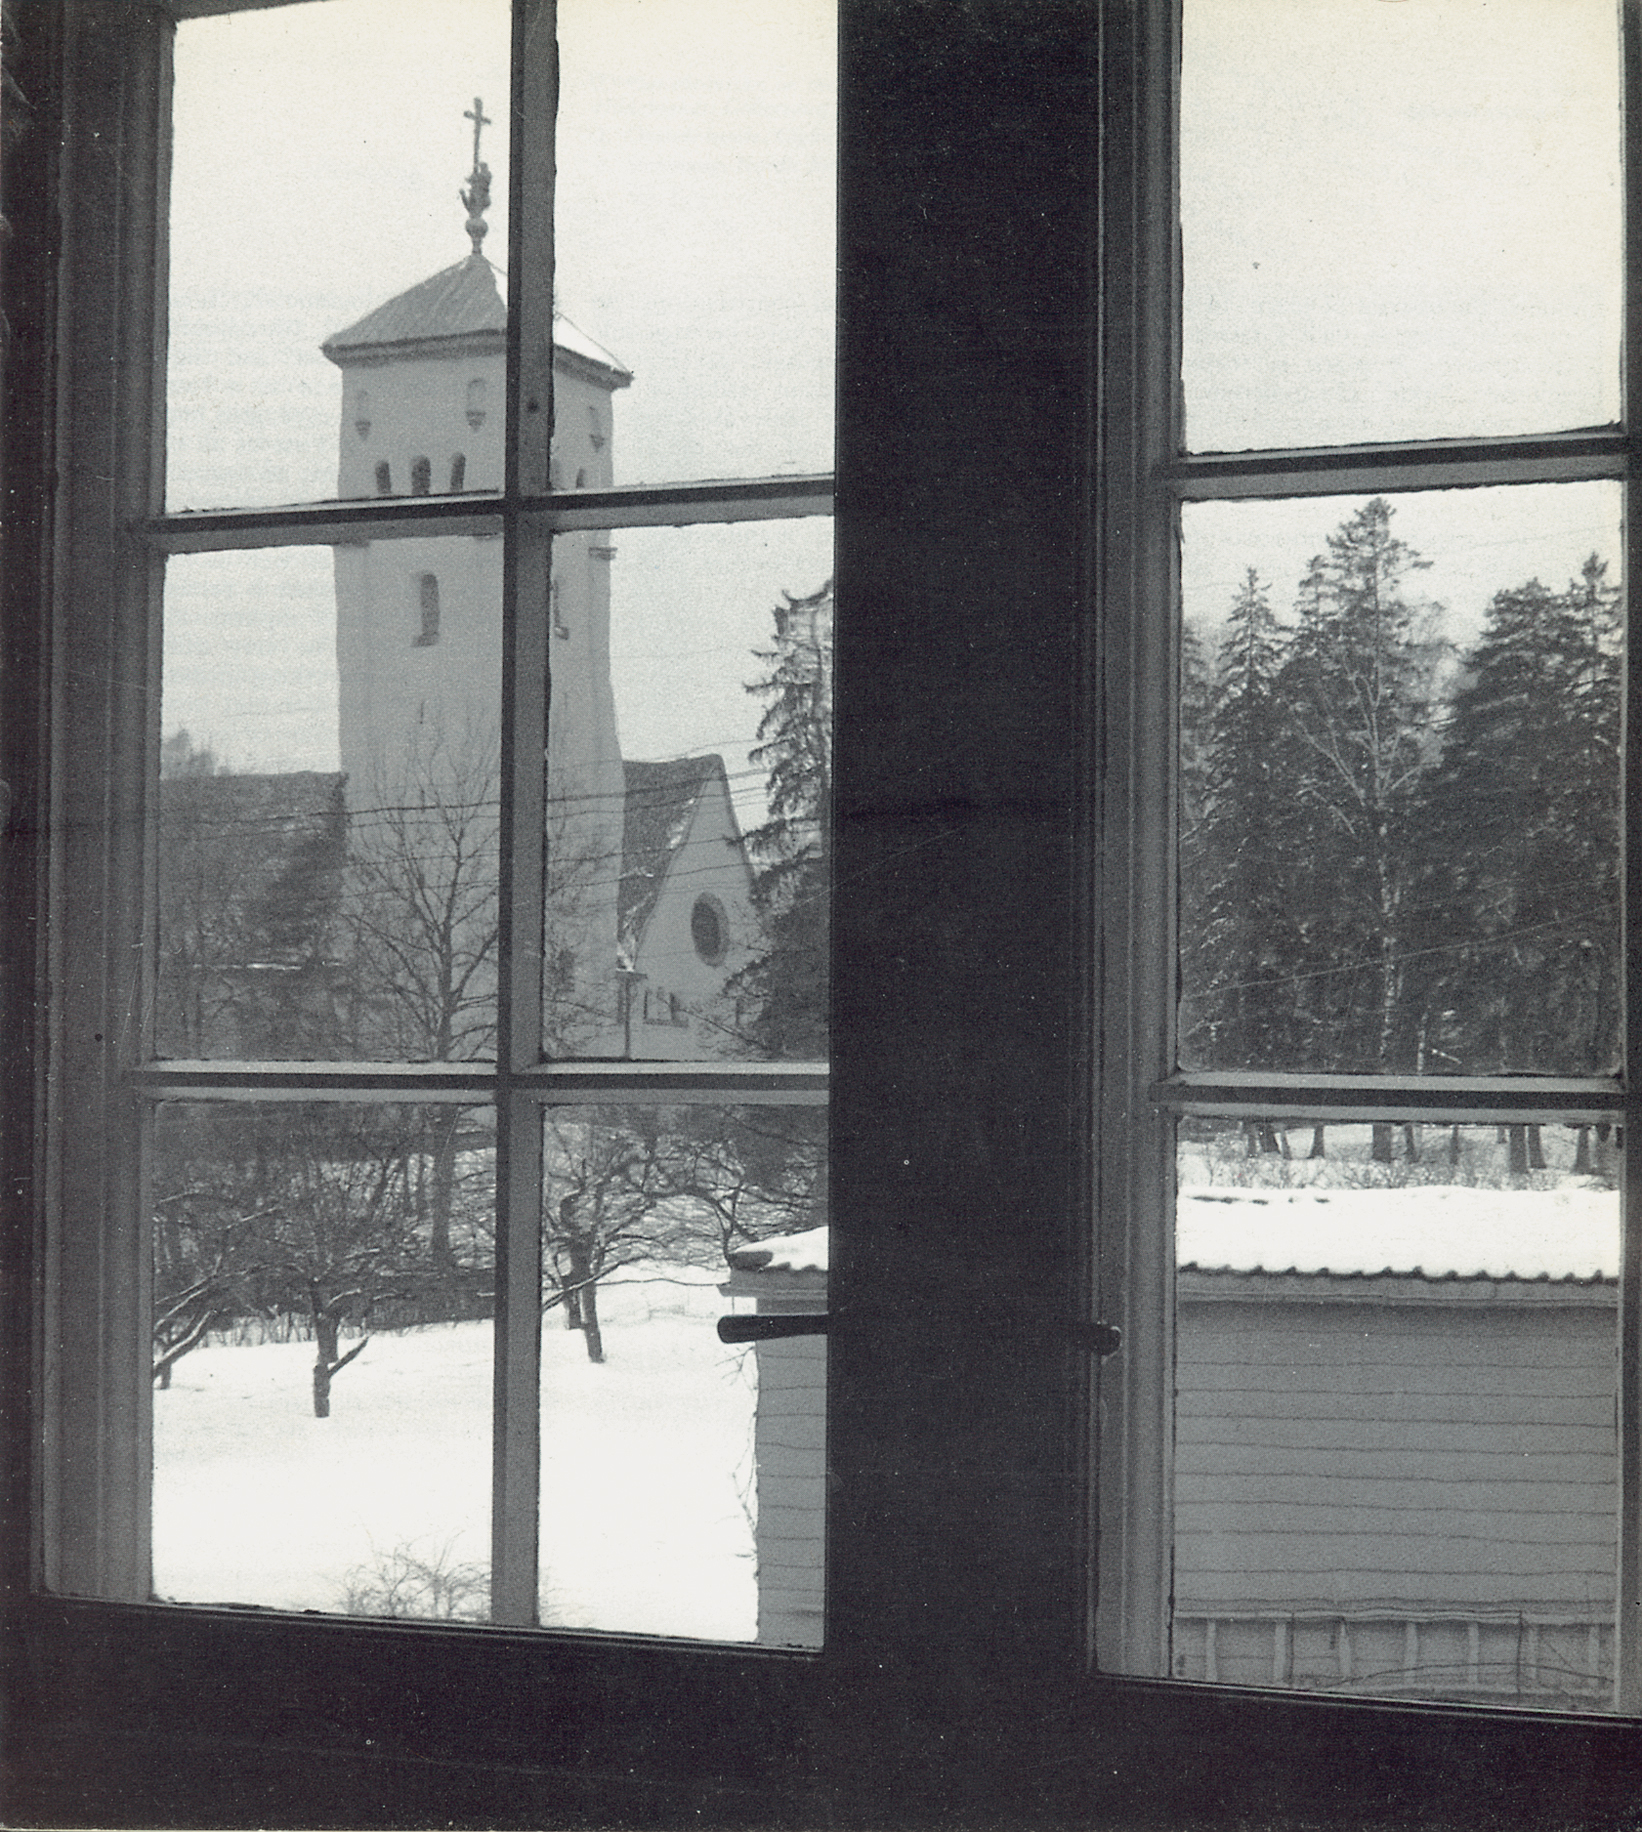 Norberg-Schulz's picture of his second home in Slemdalsvingen 55, as published in _Genius Loci_.